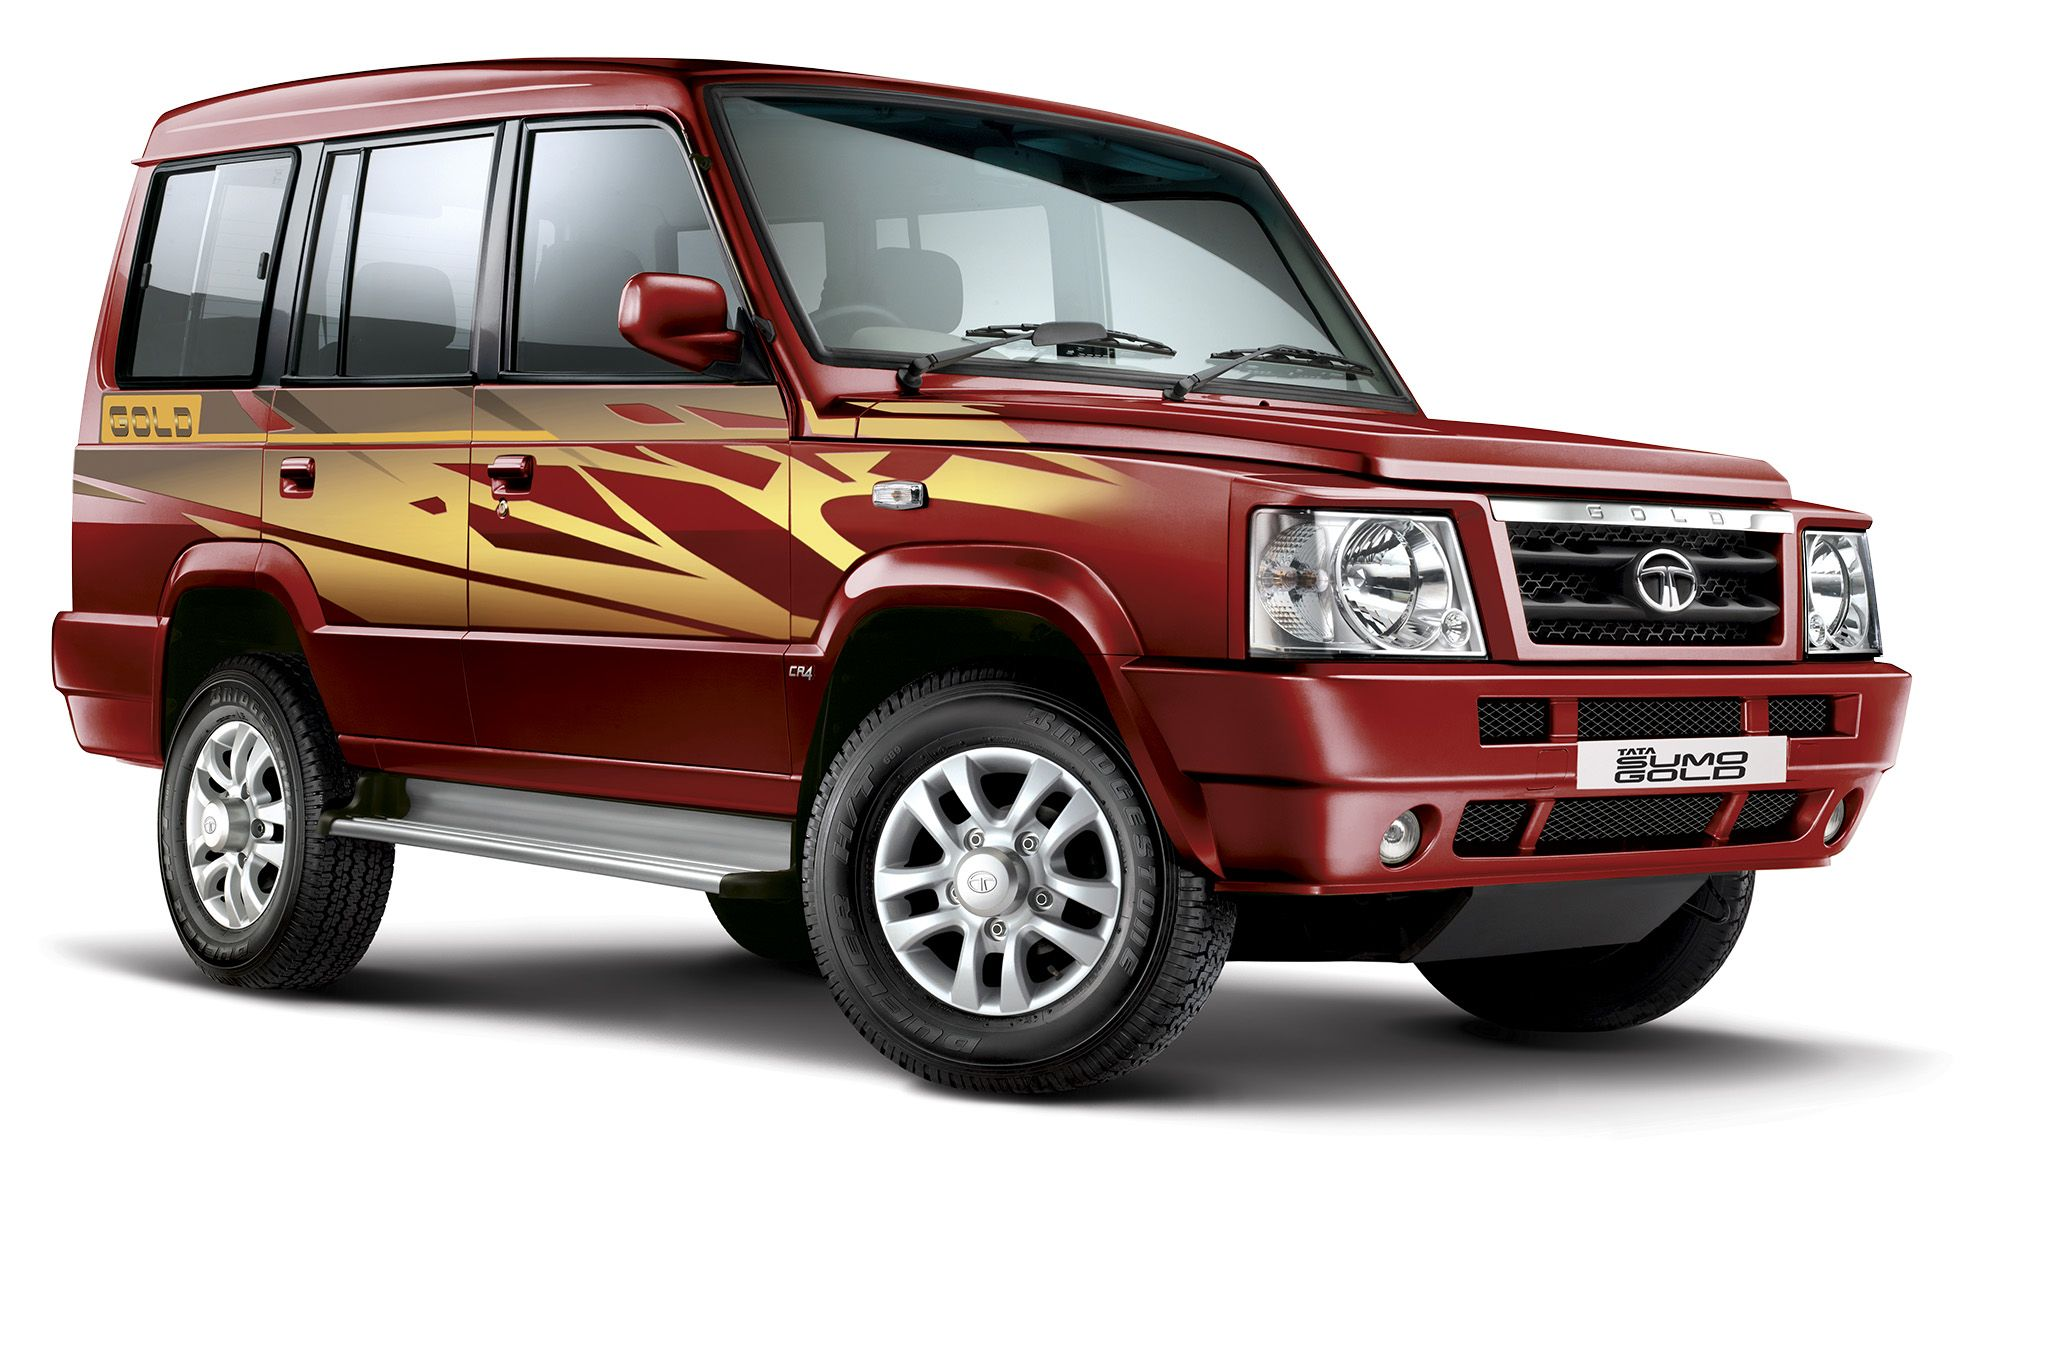 Tata sumo gold full hd images 2018 hd cars wallpapers beautiful wallpapers pinterest sumo and wallpaper